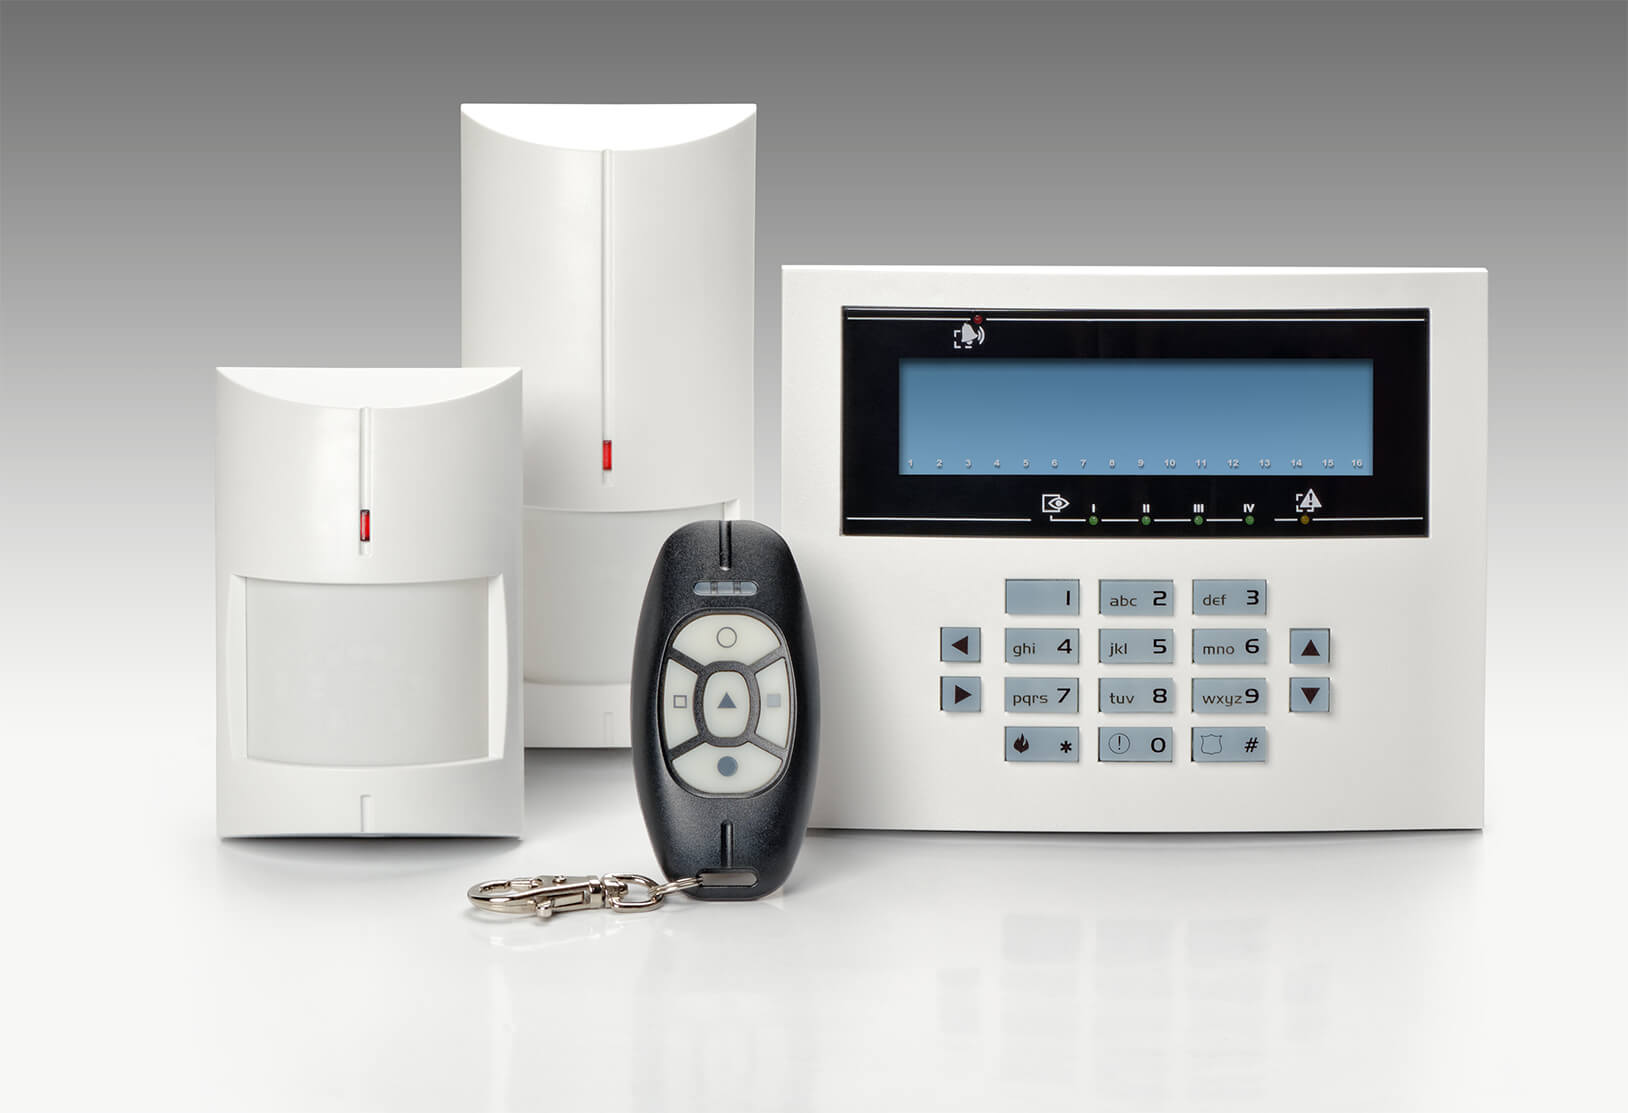 Business & Residential NACOSS Approved Burglar Alarms In Bethnal Green E3 - Local Bethnal Green E3 security company.Call 02078872244 - Dedicated to Safety & Security. Companies, shops and homes ..